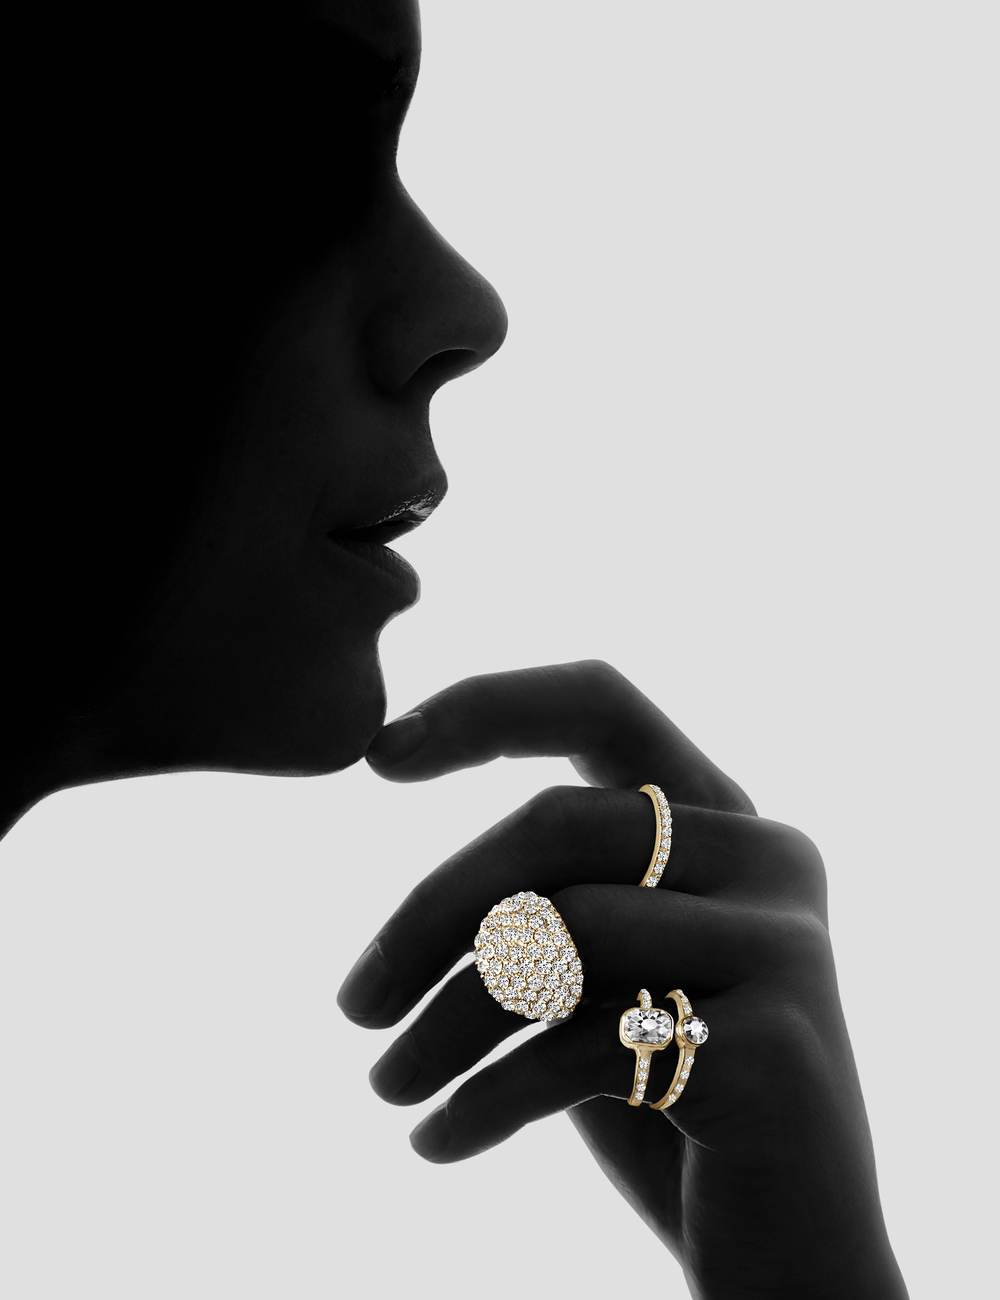 Gold Jewellery Silhouette Creative Still Life Photography Golden Expensive Jewelry Rings